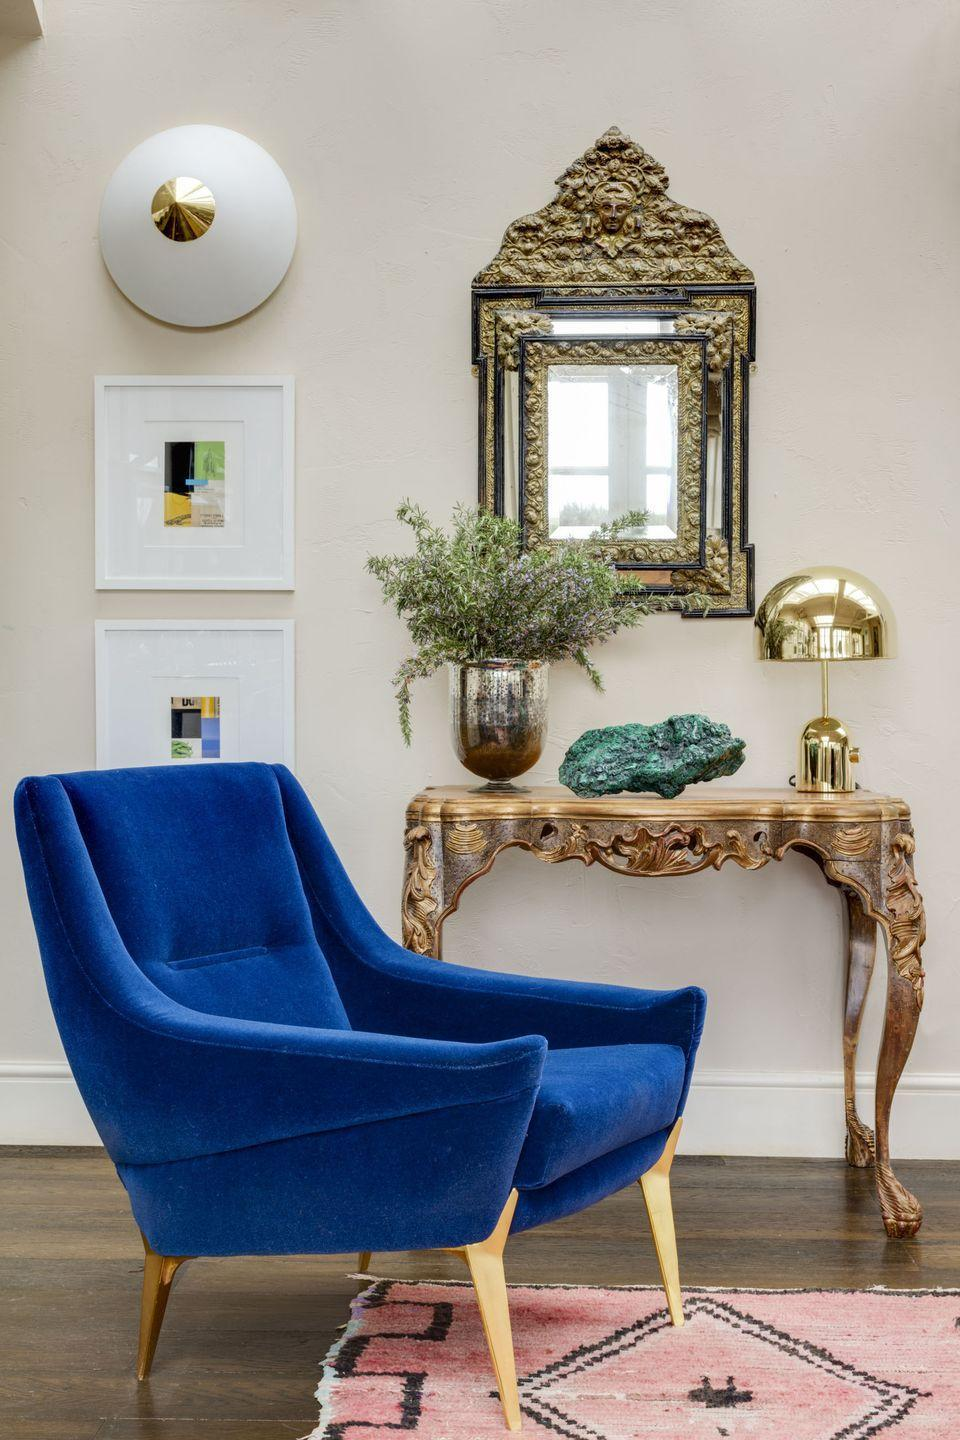 """<p>""""I walked by this chair on the Pimlico road and fell in love with the electric blue mohair. It's one of a pair from the 1950s by Charles Ramos, and they're both supremely comfortable. The lamp is by Tom Dixon, I am a huge fan. The collages on the wall are by American artist Cecil Touchon and I love how they look hung under this strange conical 60s wall light.""""</p>"""